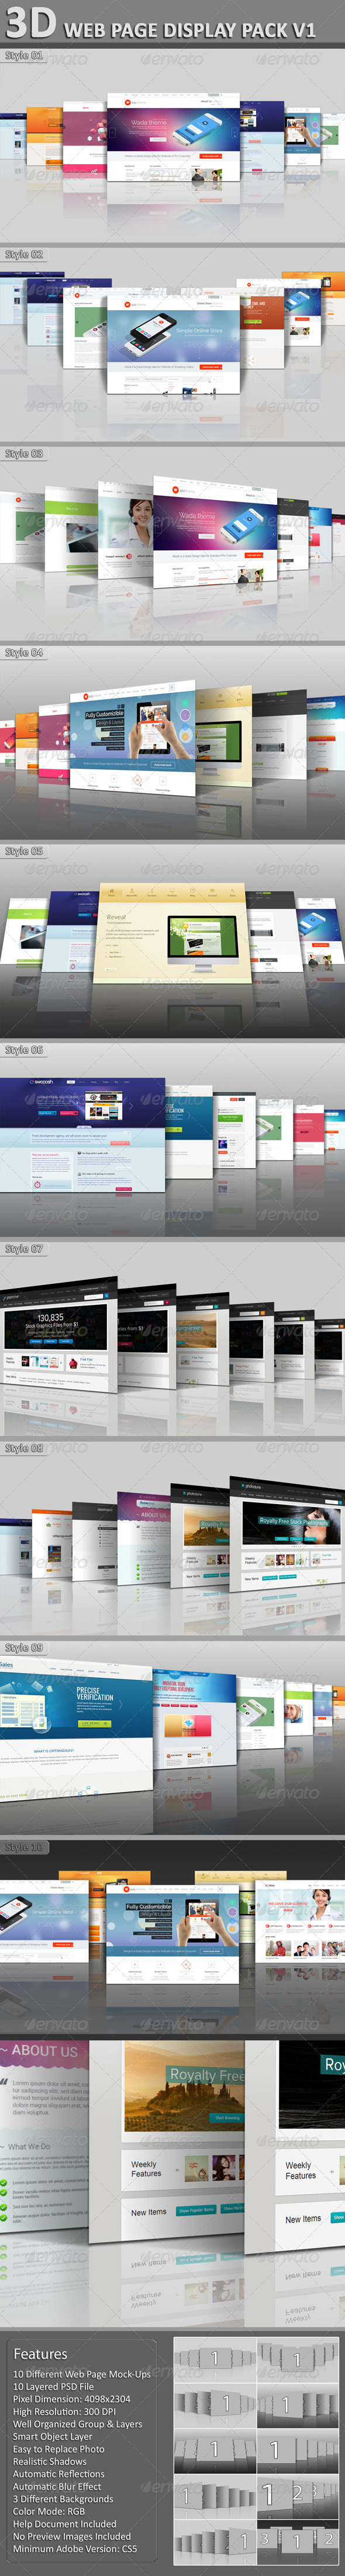 3D Web Page Display Pack V1 - Website Displays